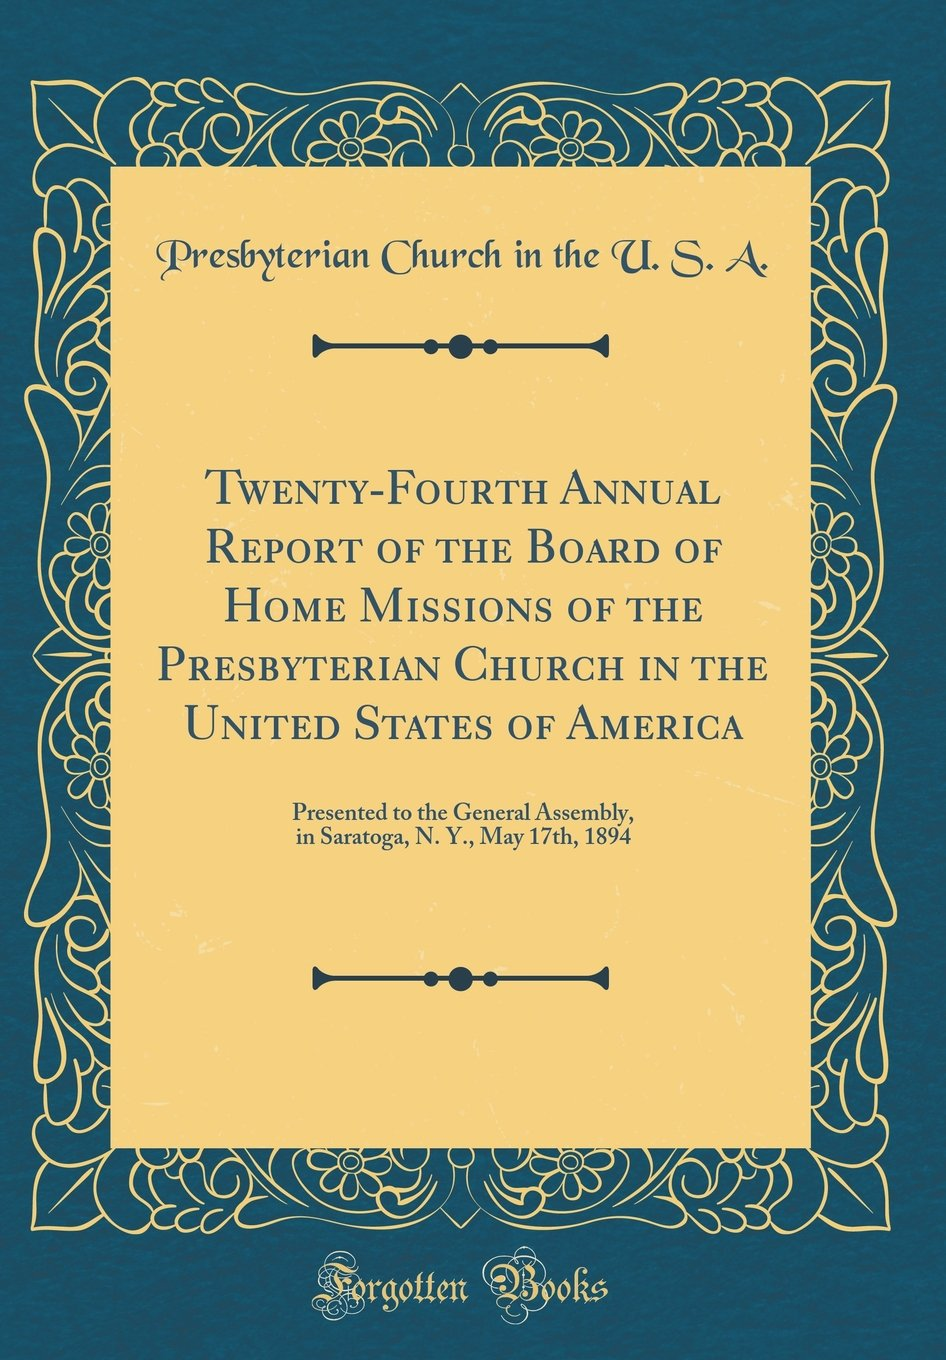 Download Twenty-Fourth Annual Report of the Board of Home Missions of the Presbyterian Church in the United States of America: Presented to the General ... N. Y., May 17th, 1894 (Classic Reprint) ebook